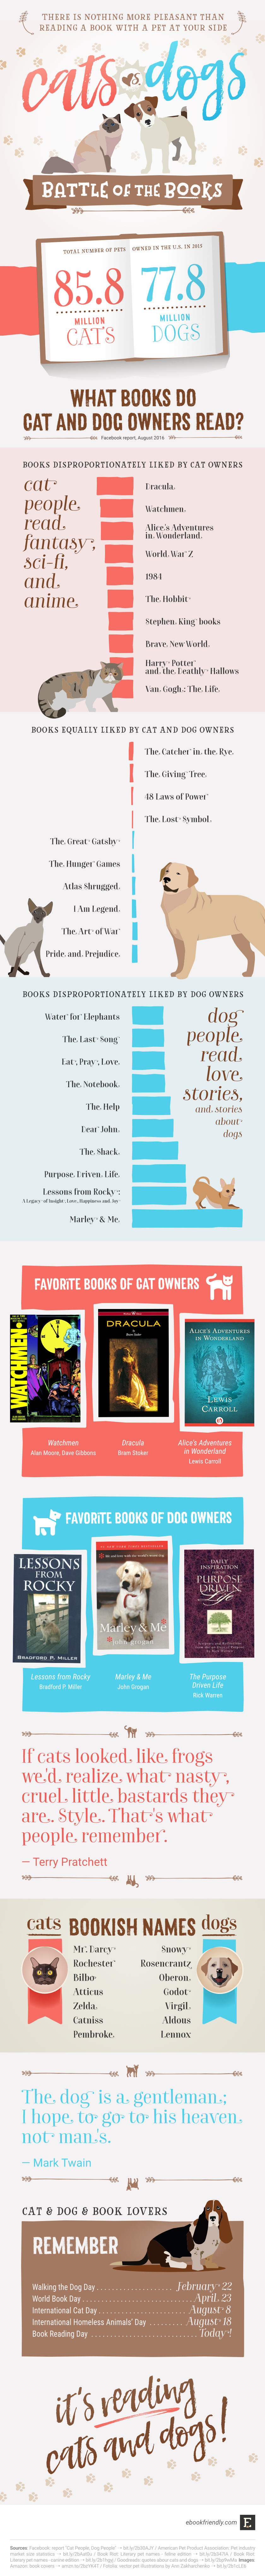 Favorite books of cat and dog lovers (infographic)